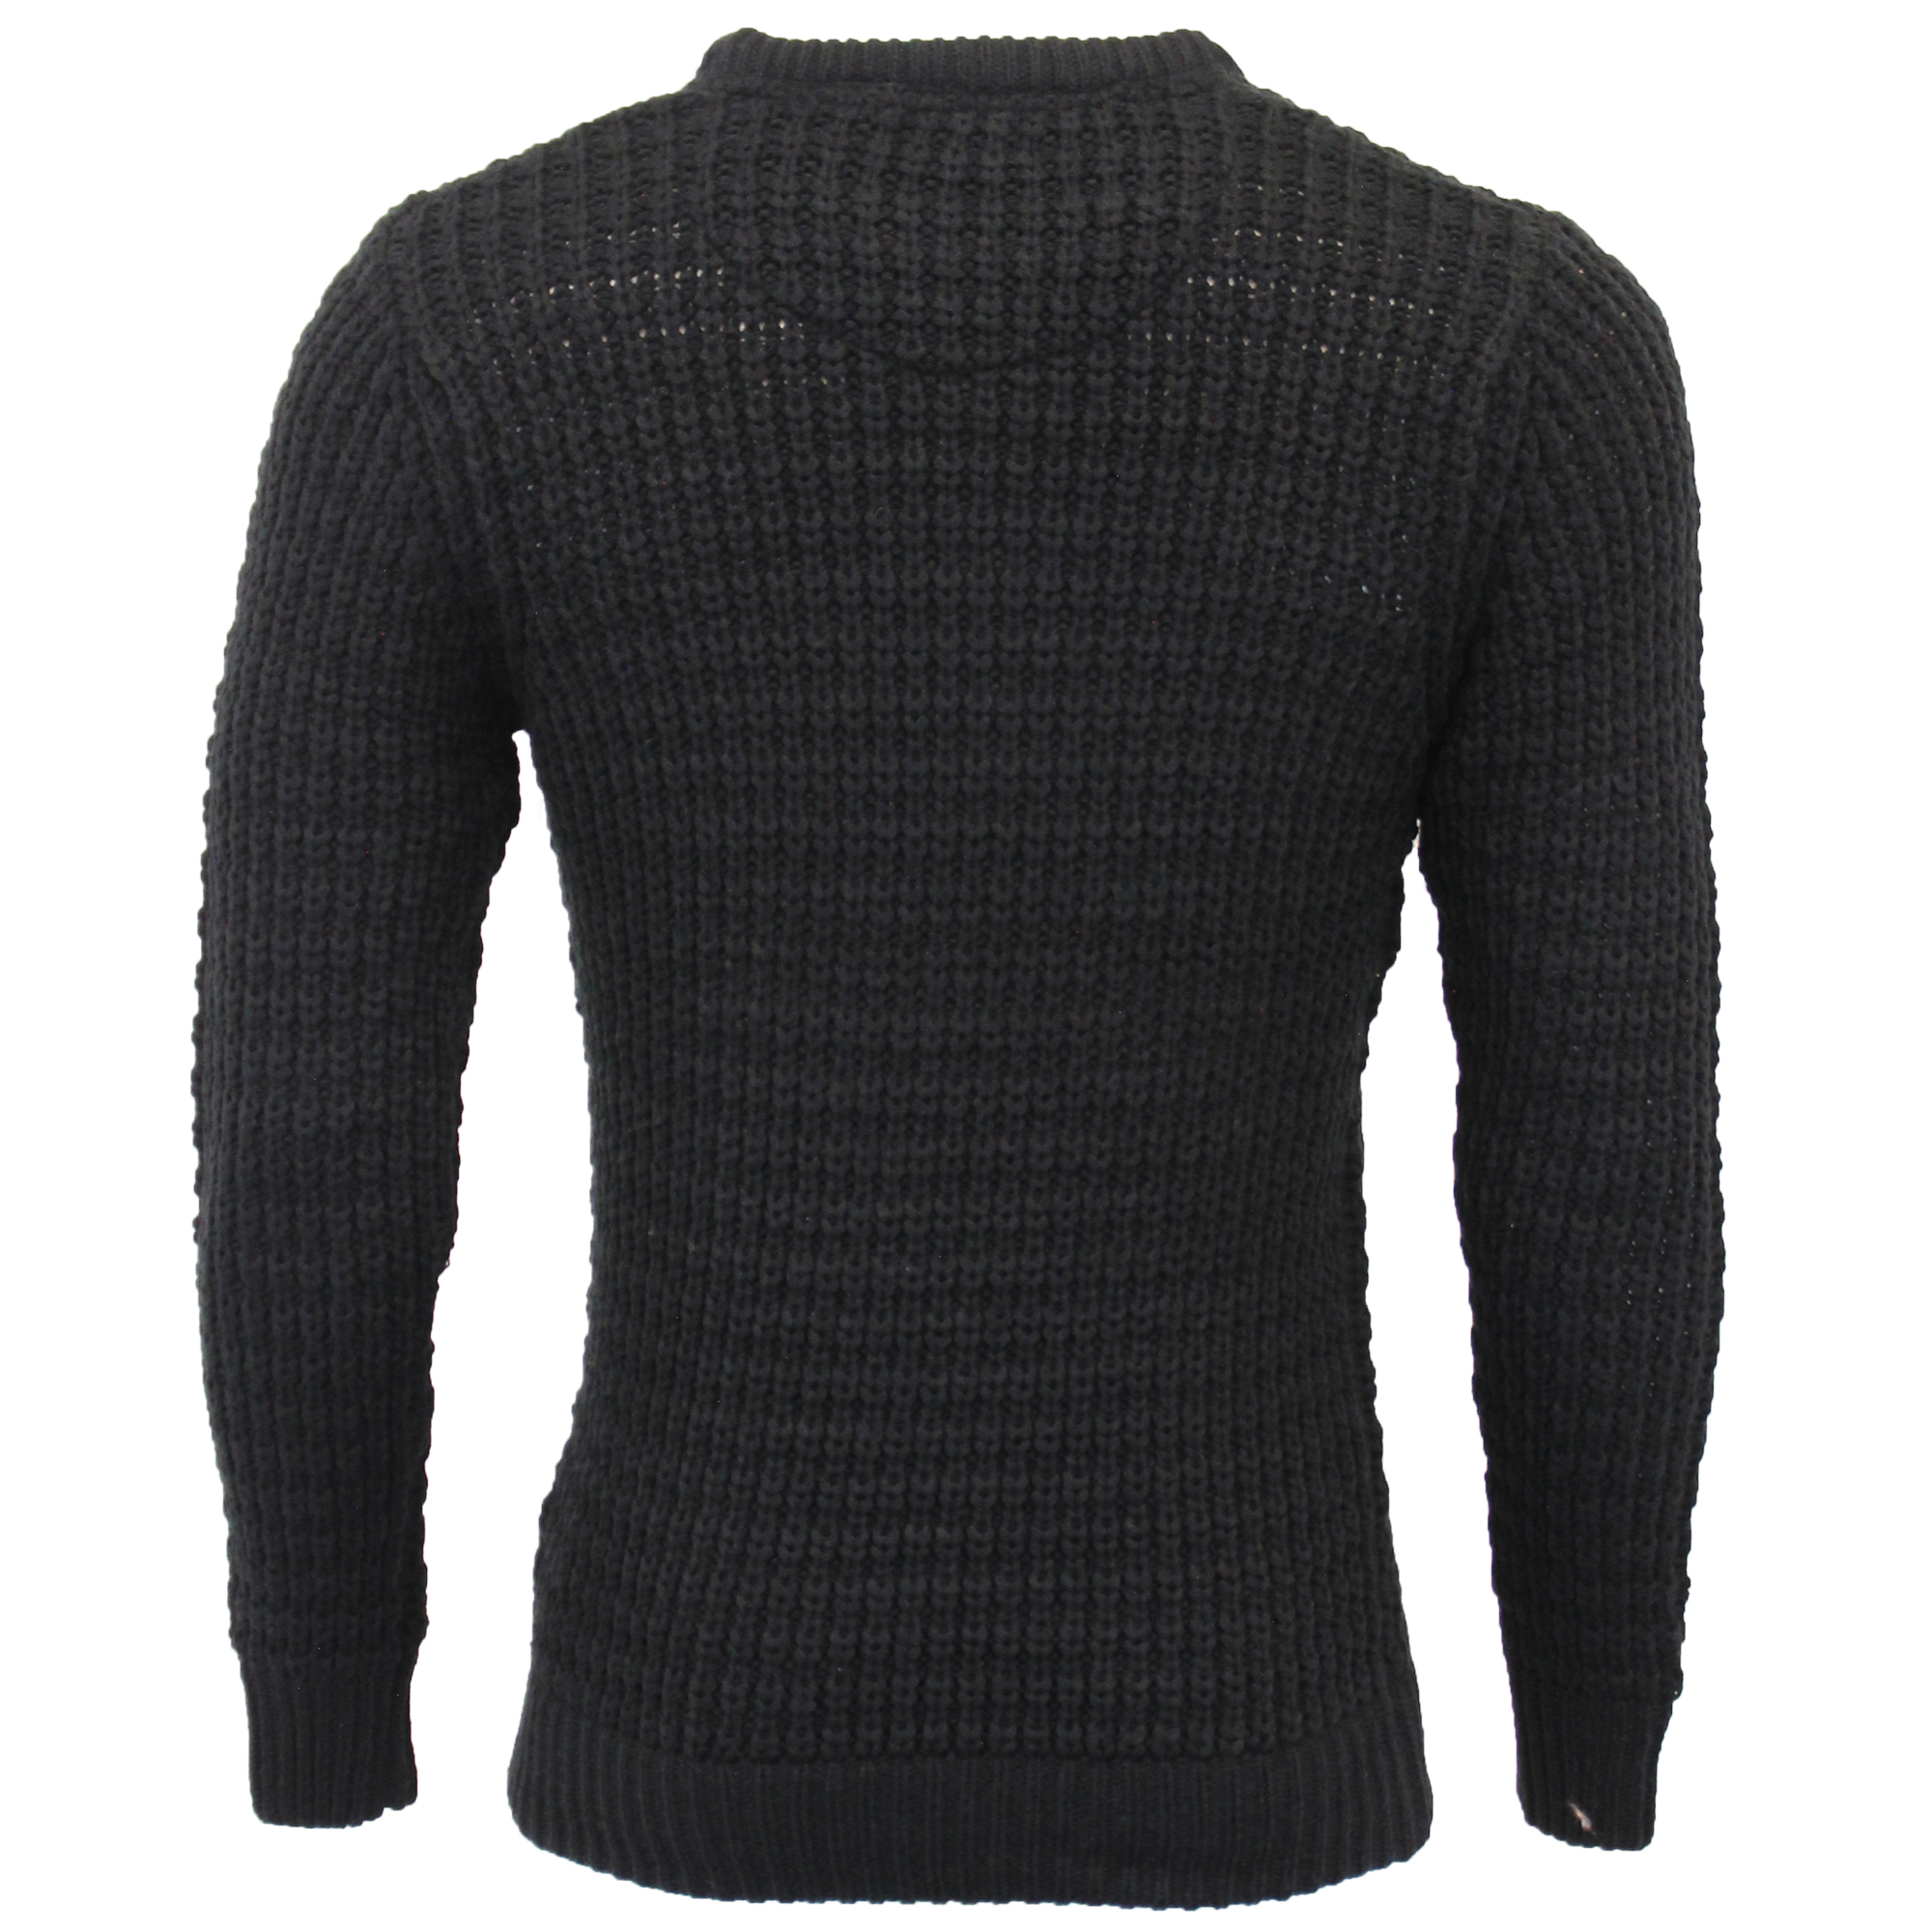 Mens-Cable-Knitted-Jumper-Brave-Soul-DIRAC-Crew-Neck-Pullover-Top-Winter-Fashion thumbnail 6